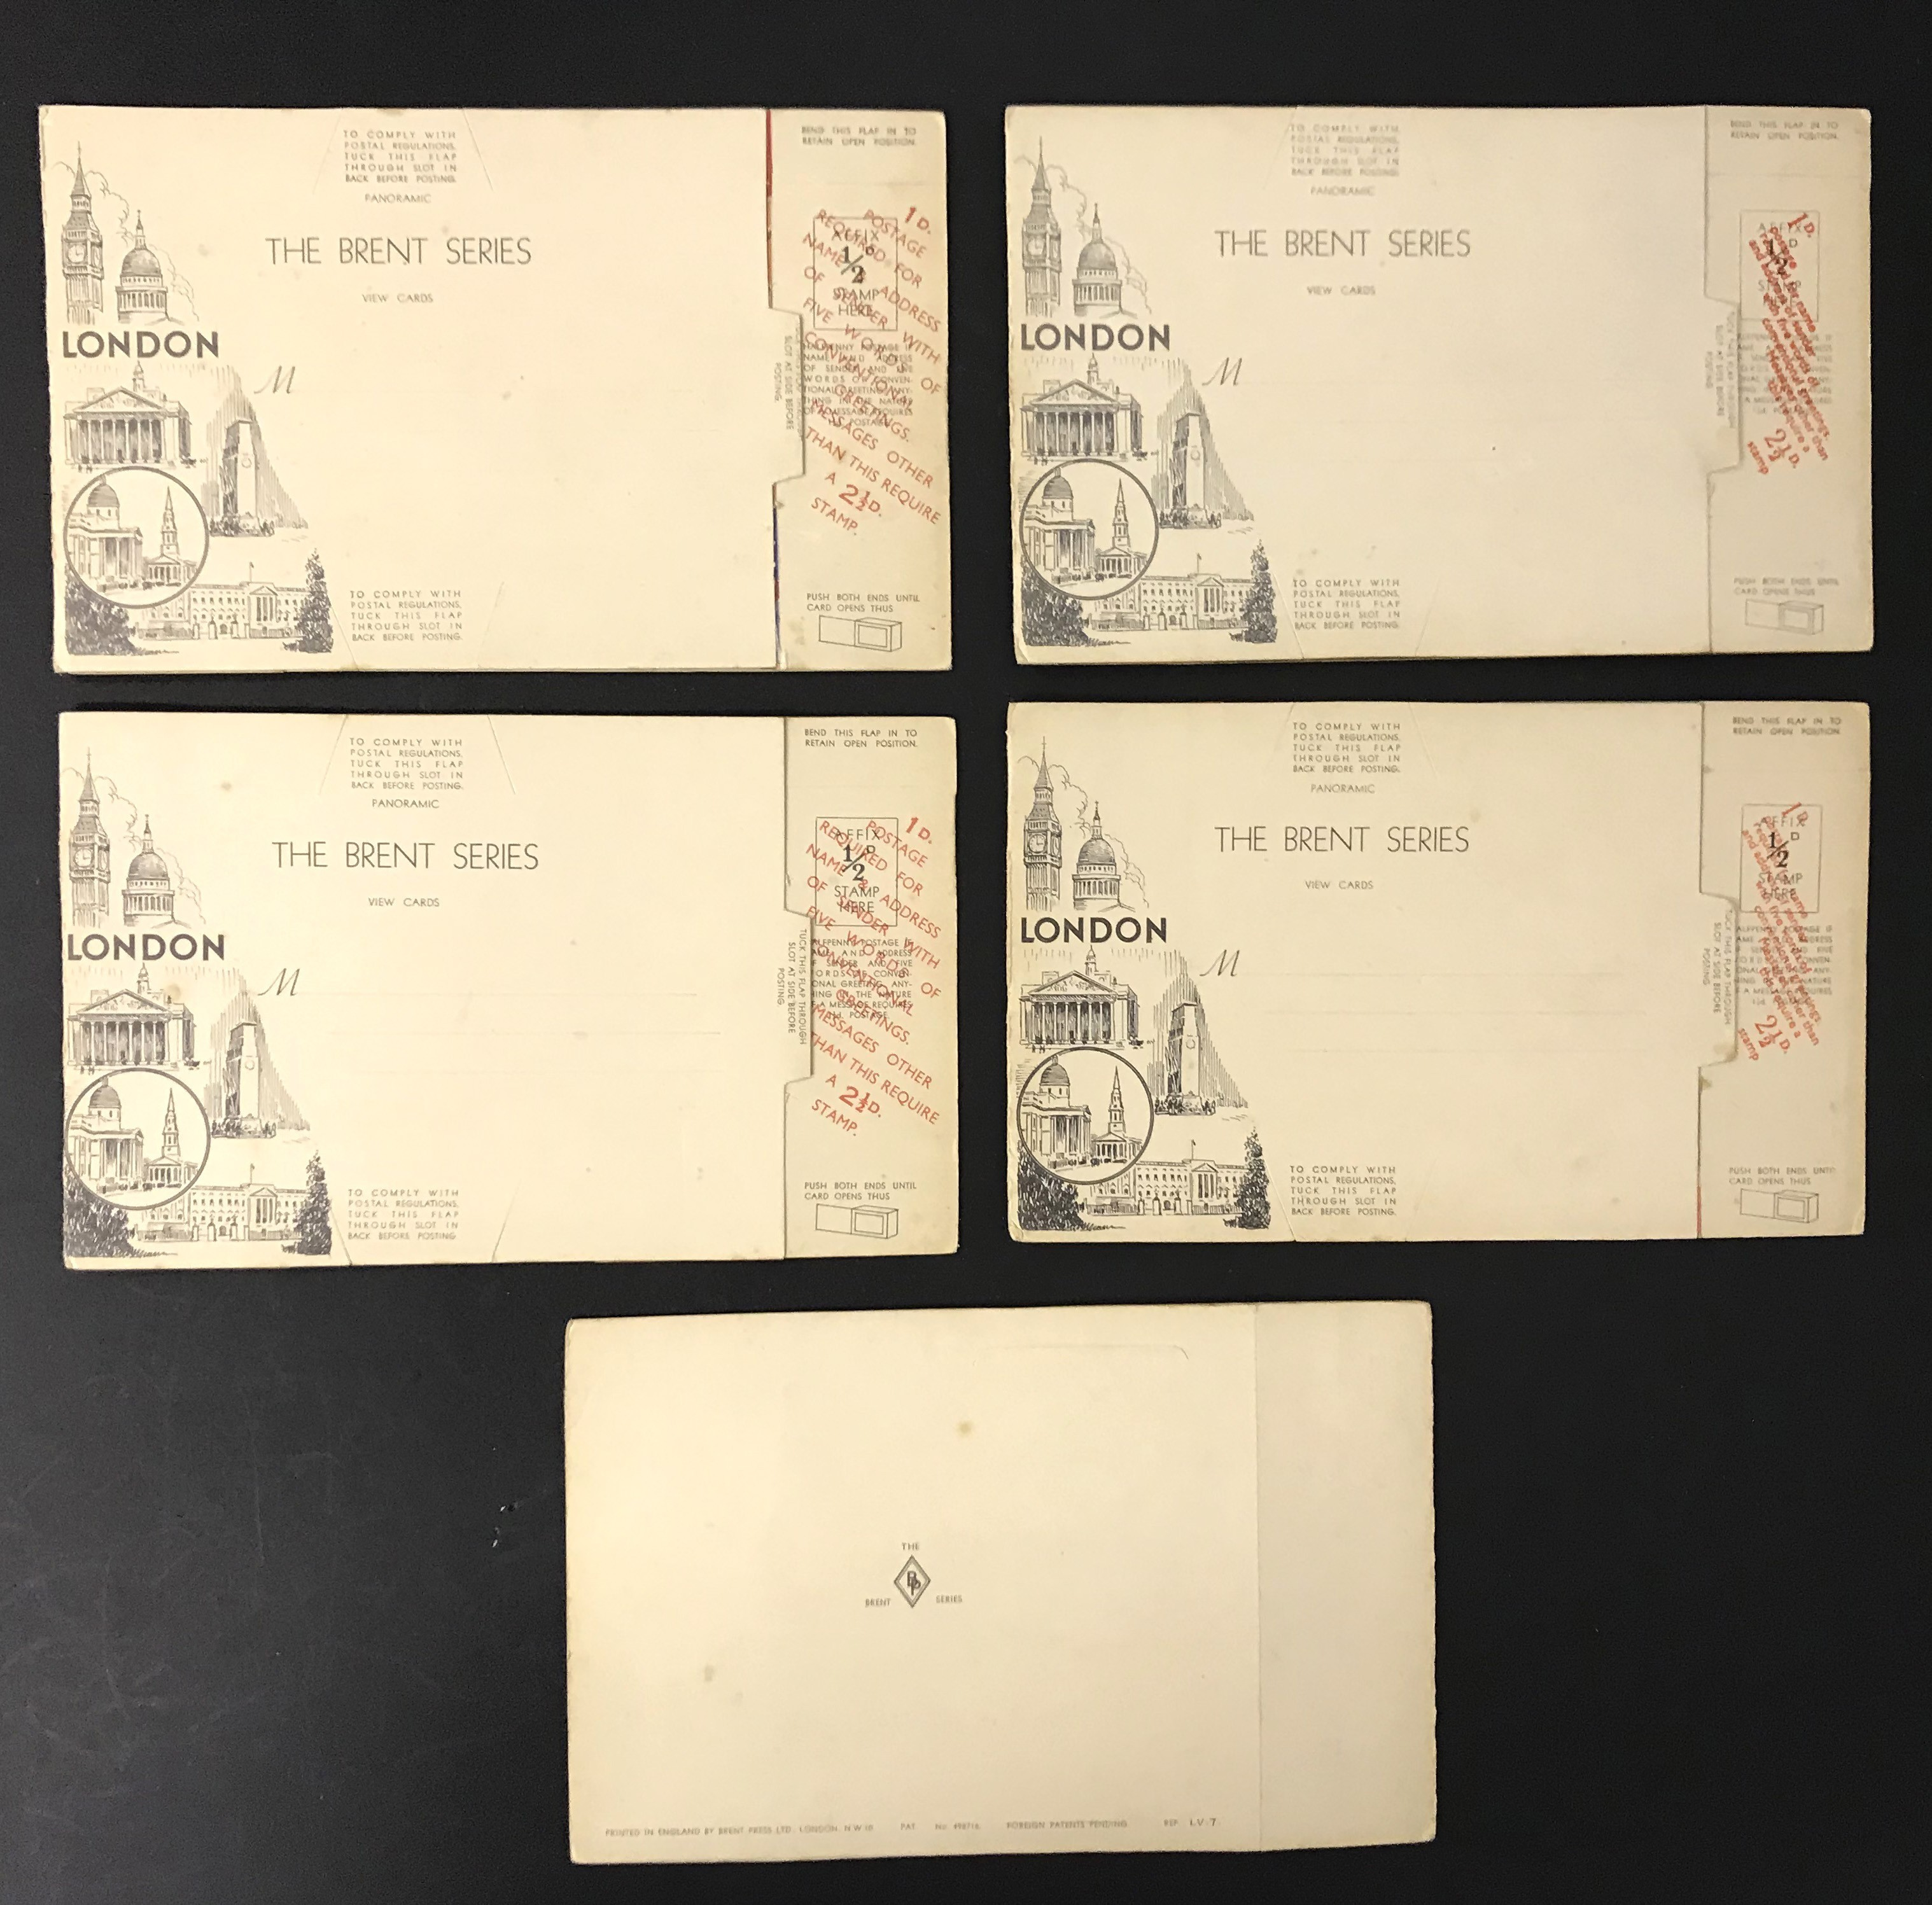 FIVE LONDON POSTCARDS - THE BRENT SERIES OF PANORAMIC VIEW CARDS - Image 12 of 13